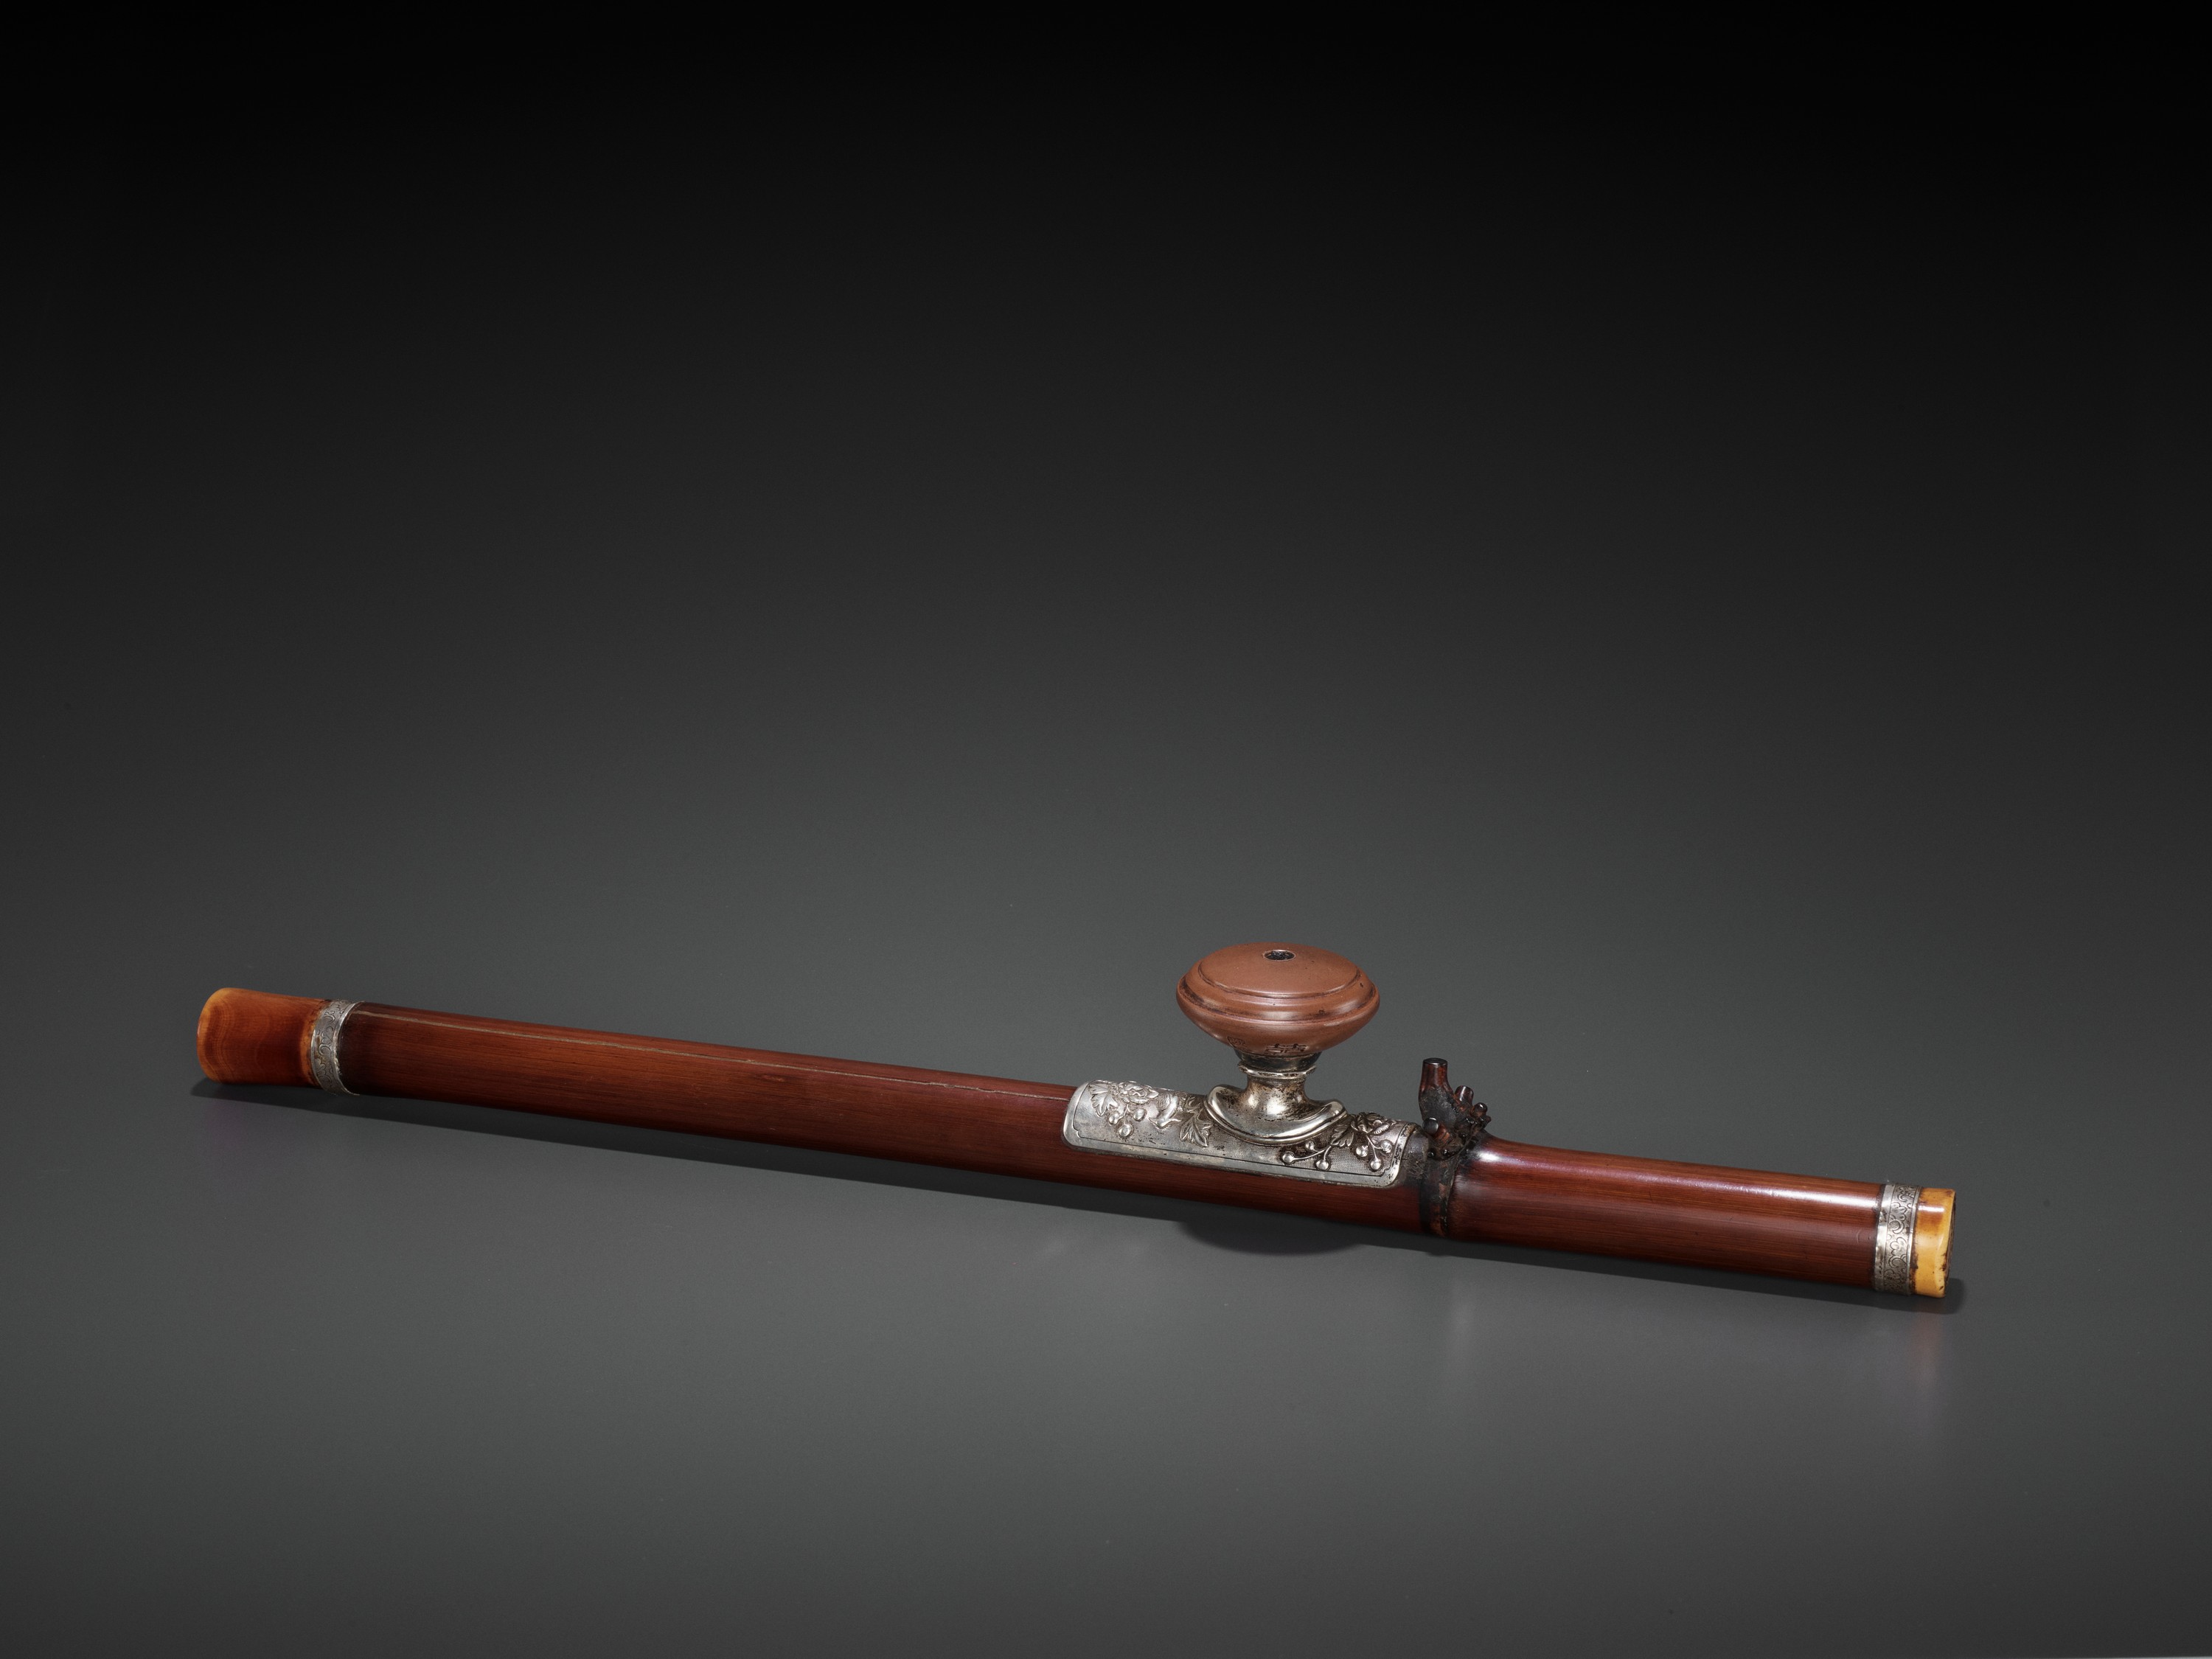 A BAMBOO OPIUM PIPE WITH IVORY, SILVER AND YIXING CERAMIC FITTINGS, LATE QING TO REPUBLIC - Image 2 of 9